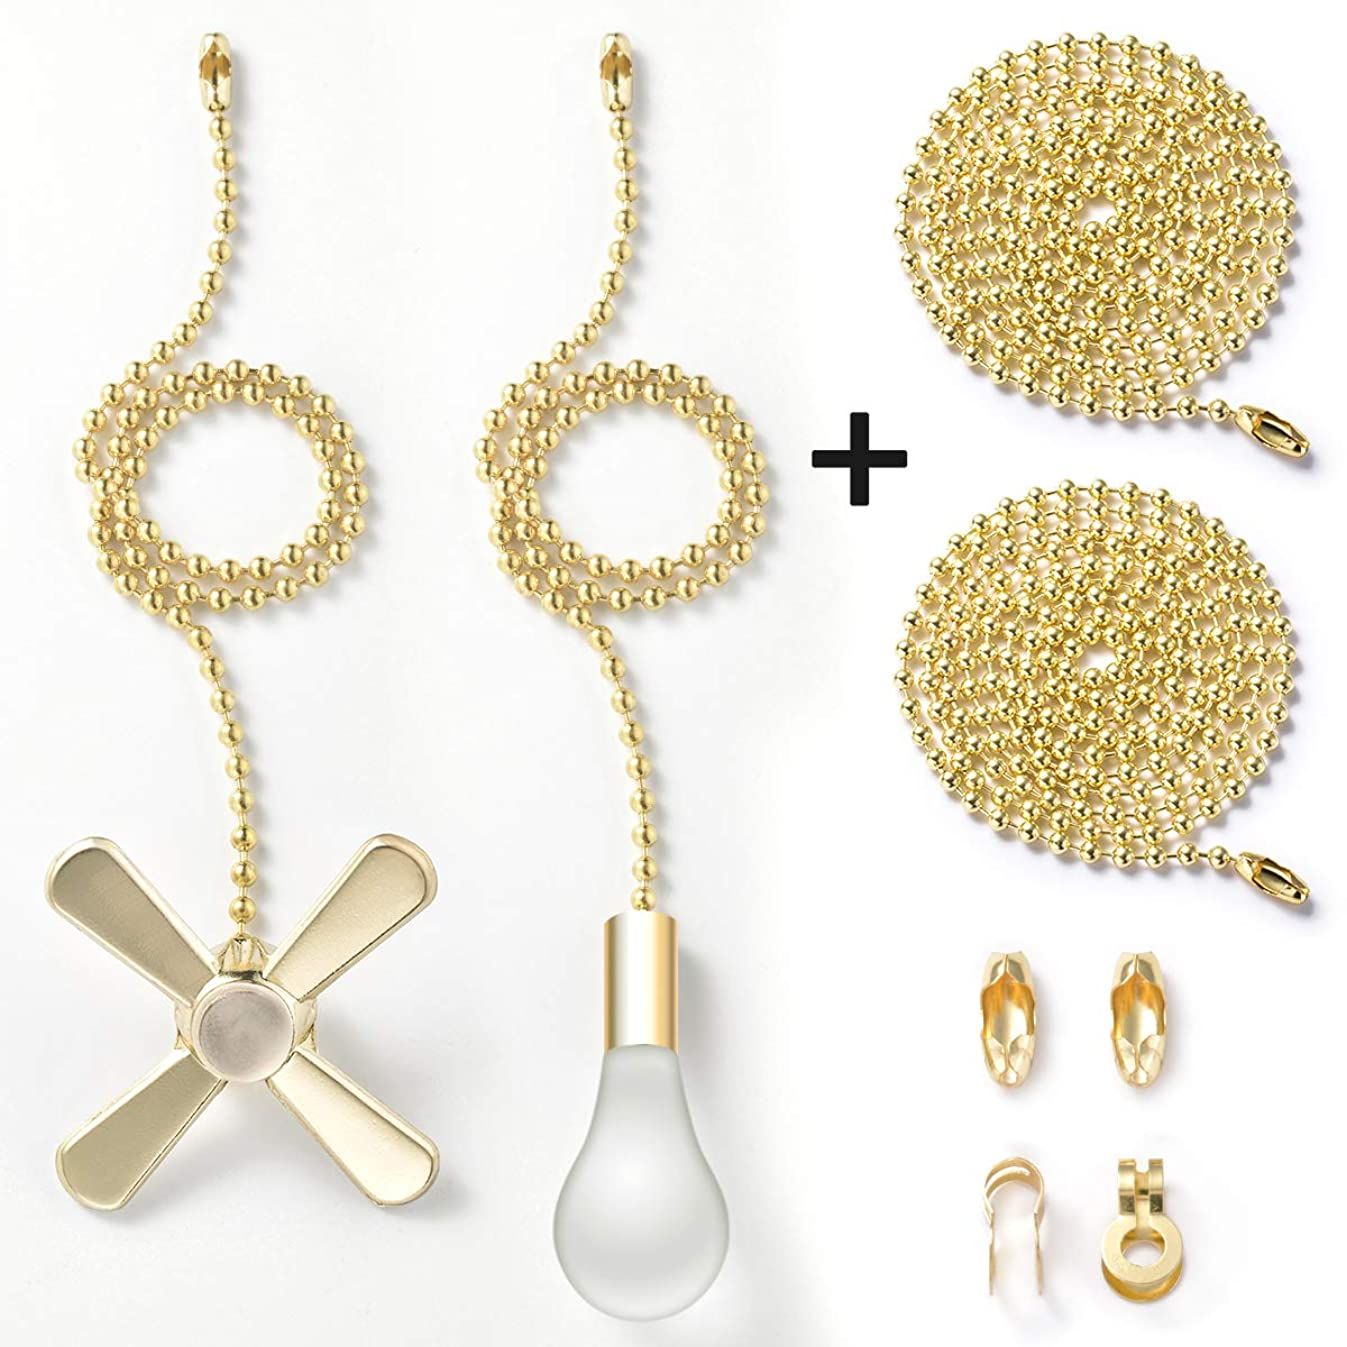 Pull Chain with 35.4 inches Extension, Kinghouse 2 pcs 13.6 inches 3.2mm Beaded Ball Fan Pull Chain Set including Beaded and Pull Loop Connectors, ELegant Holiday Gift Set (Bronze)